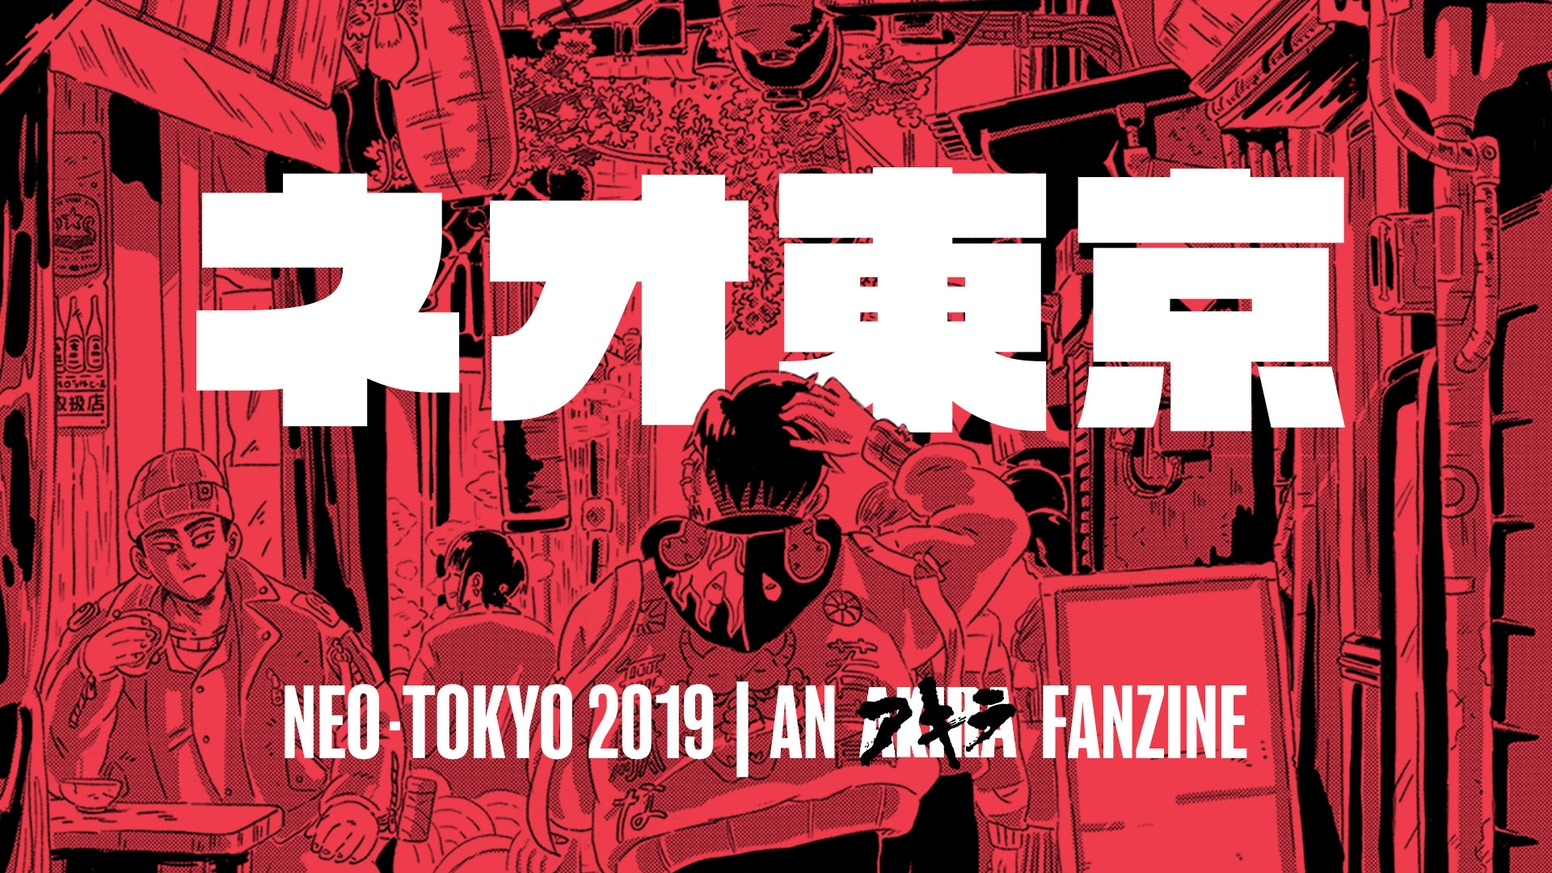 Celebrating the distant, dystopian future of Akira's Neo-Tokyo 2019 with comics, art and essays.